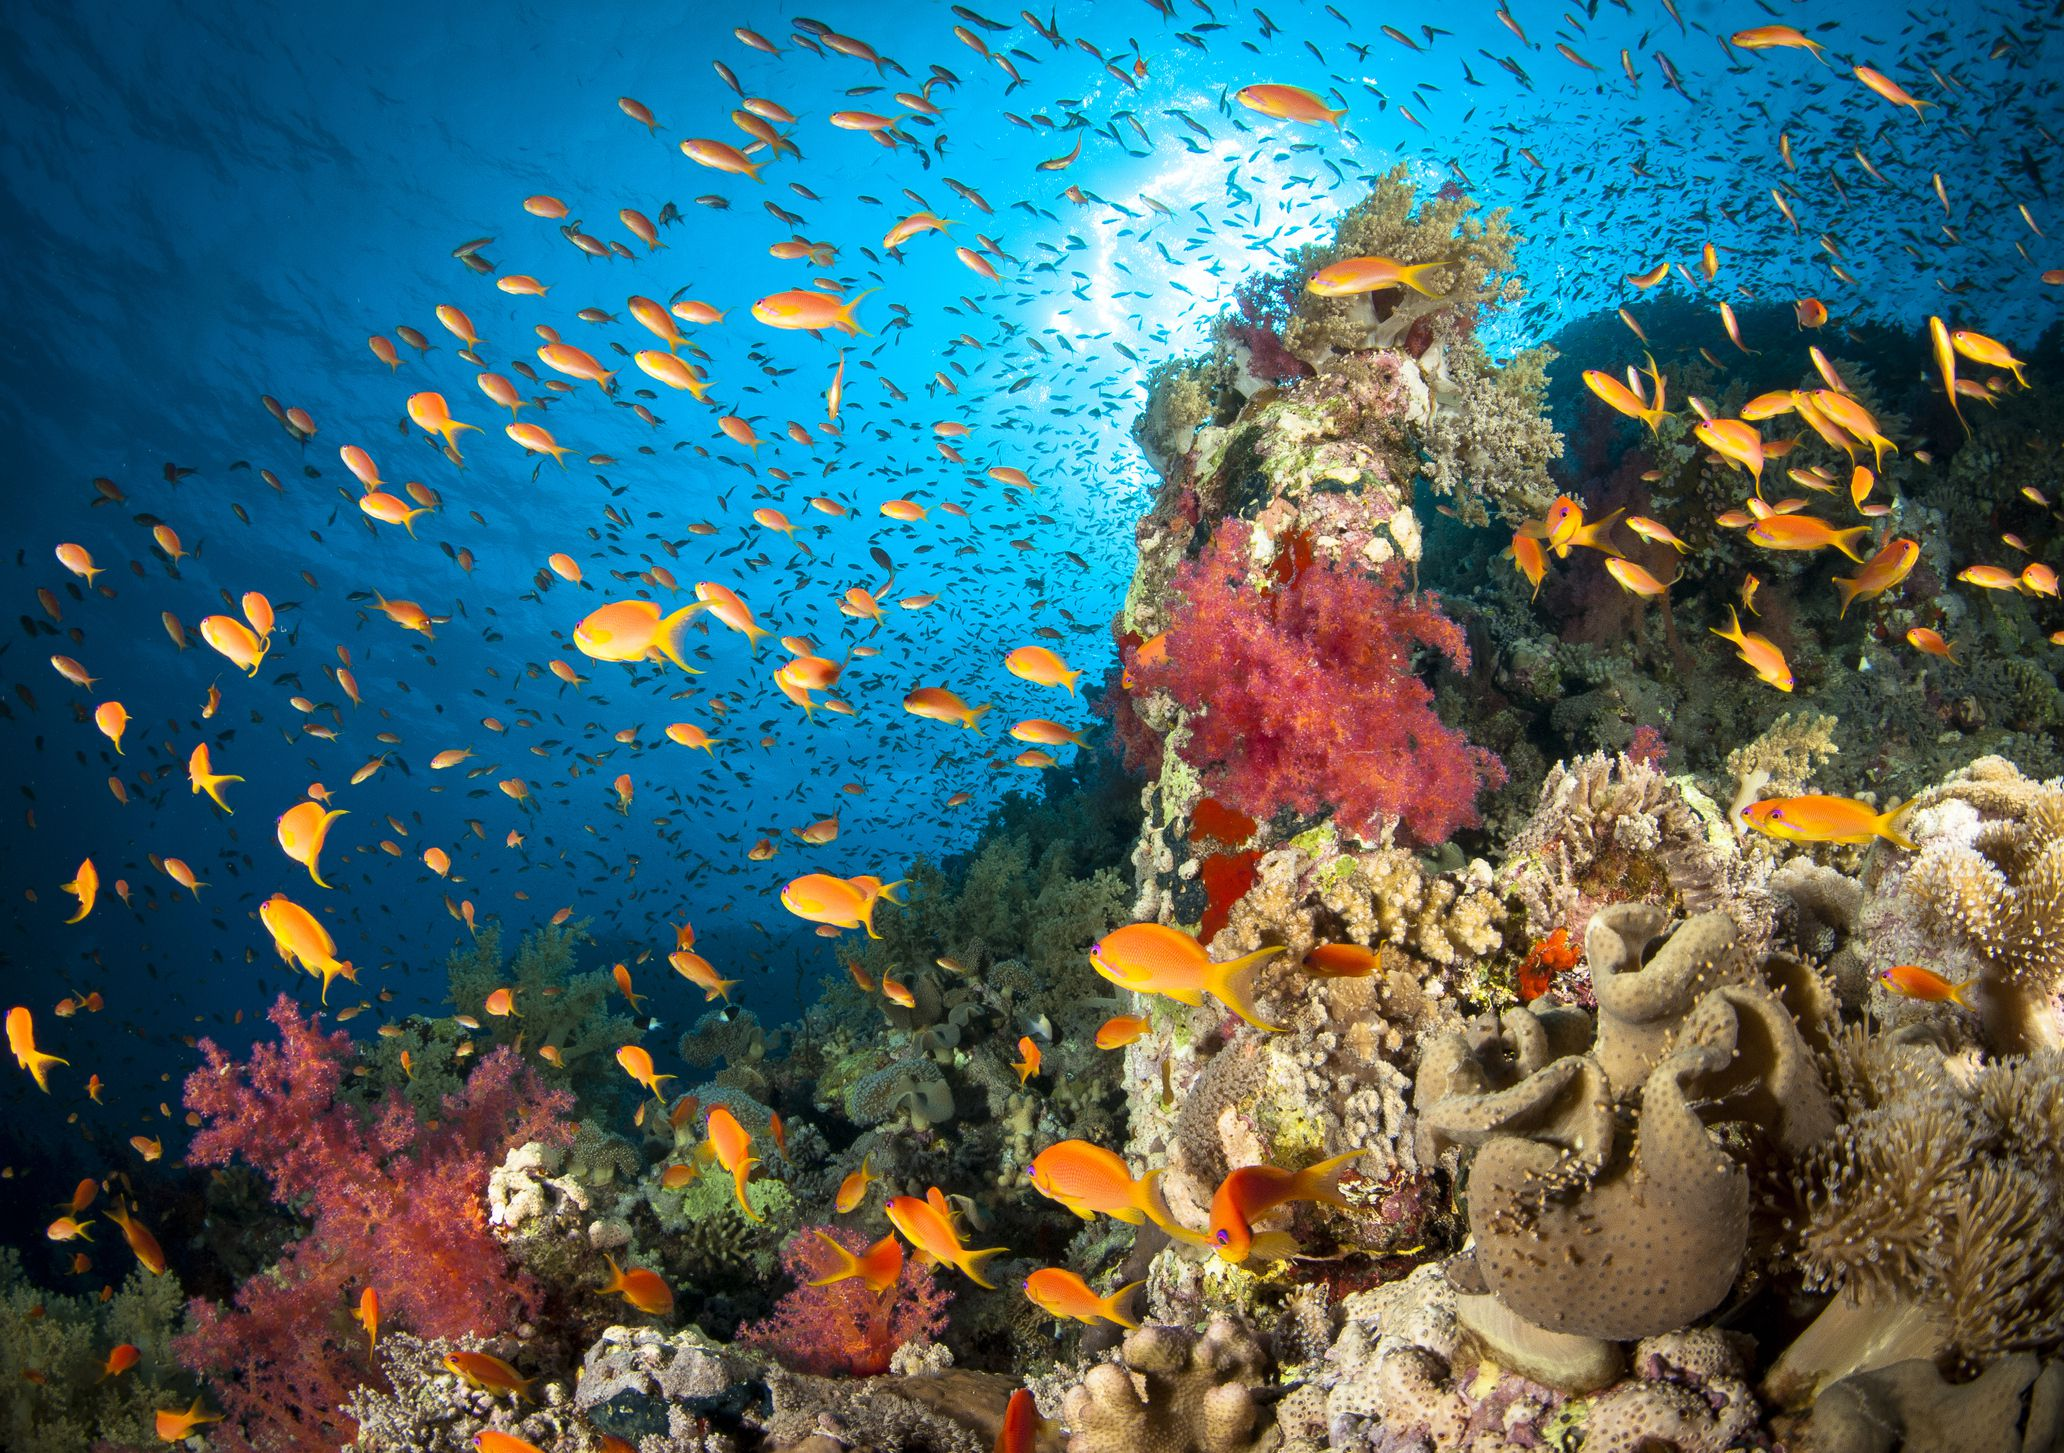 Facts About The Ocean As A Marine Life Habitat